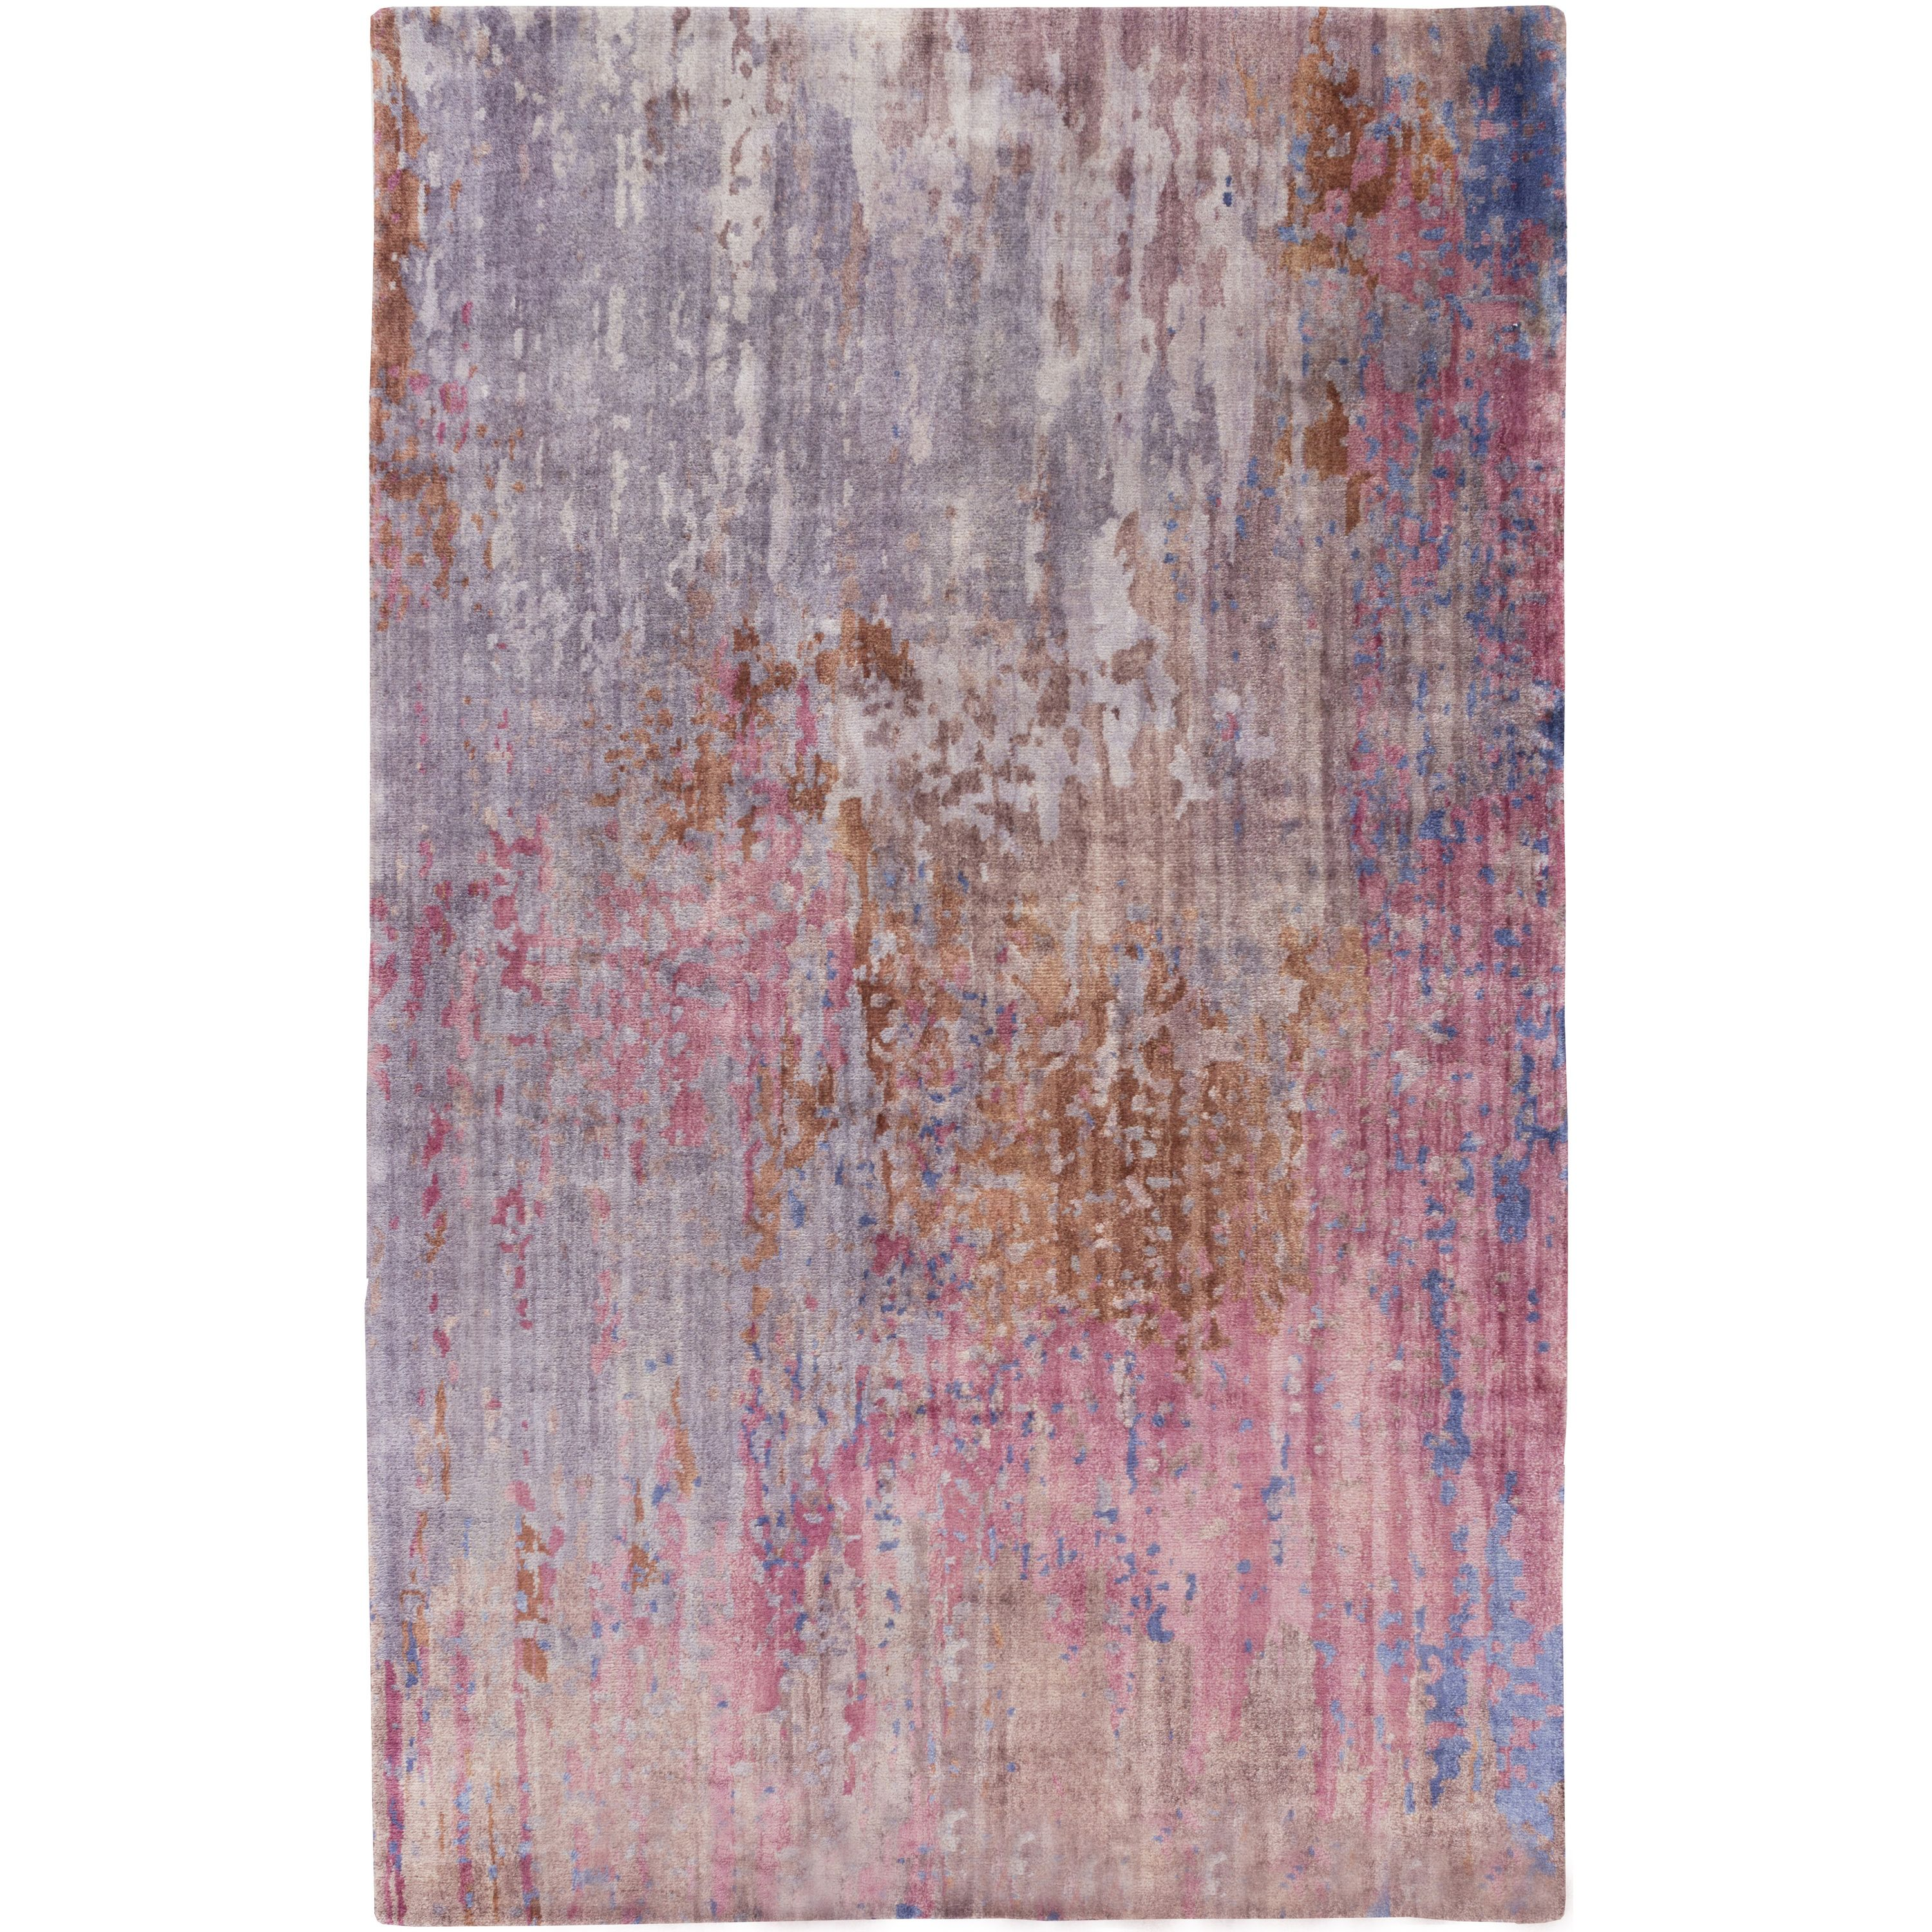 Aqualou Rug Lavender A Dreamy Watercolor Motif Helps To Create